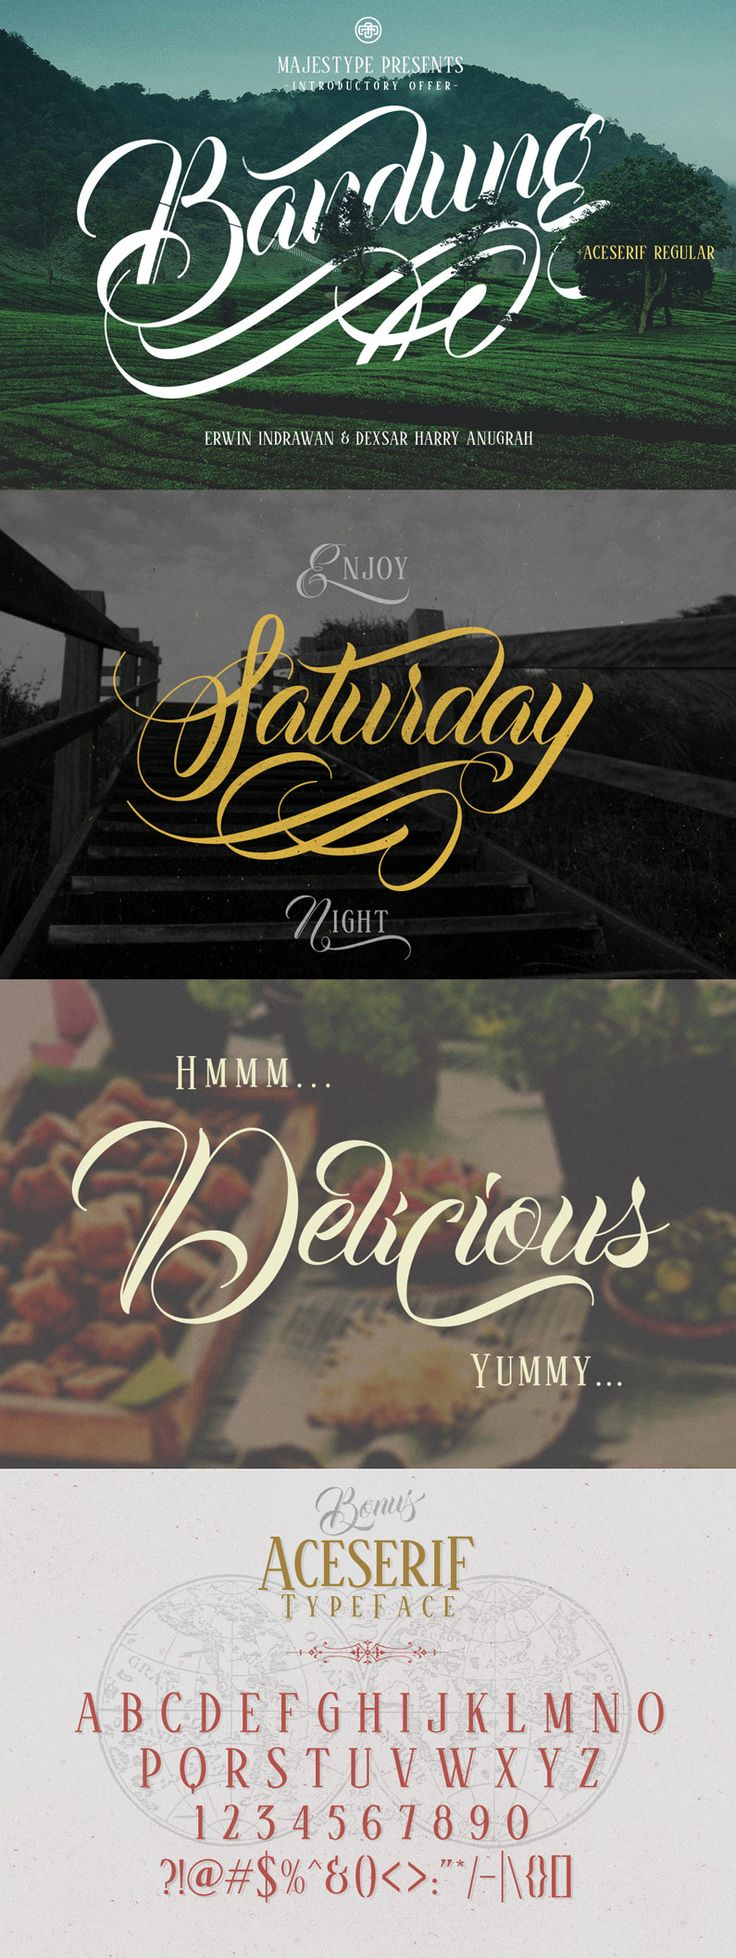 cursive fonts for wedding cards%0A Bandung from Majestype was made to capture the natural movement of a brush  script infused with